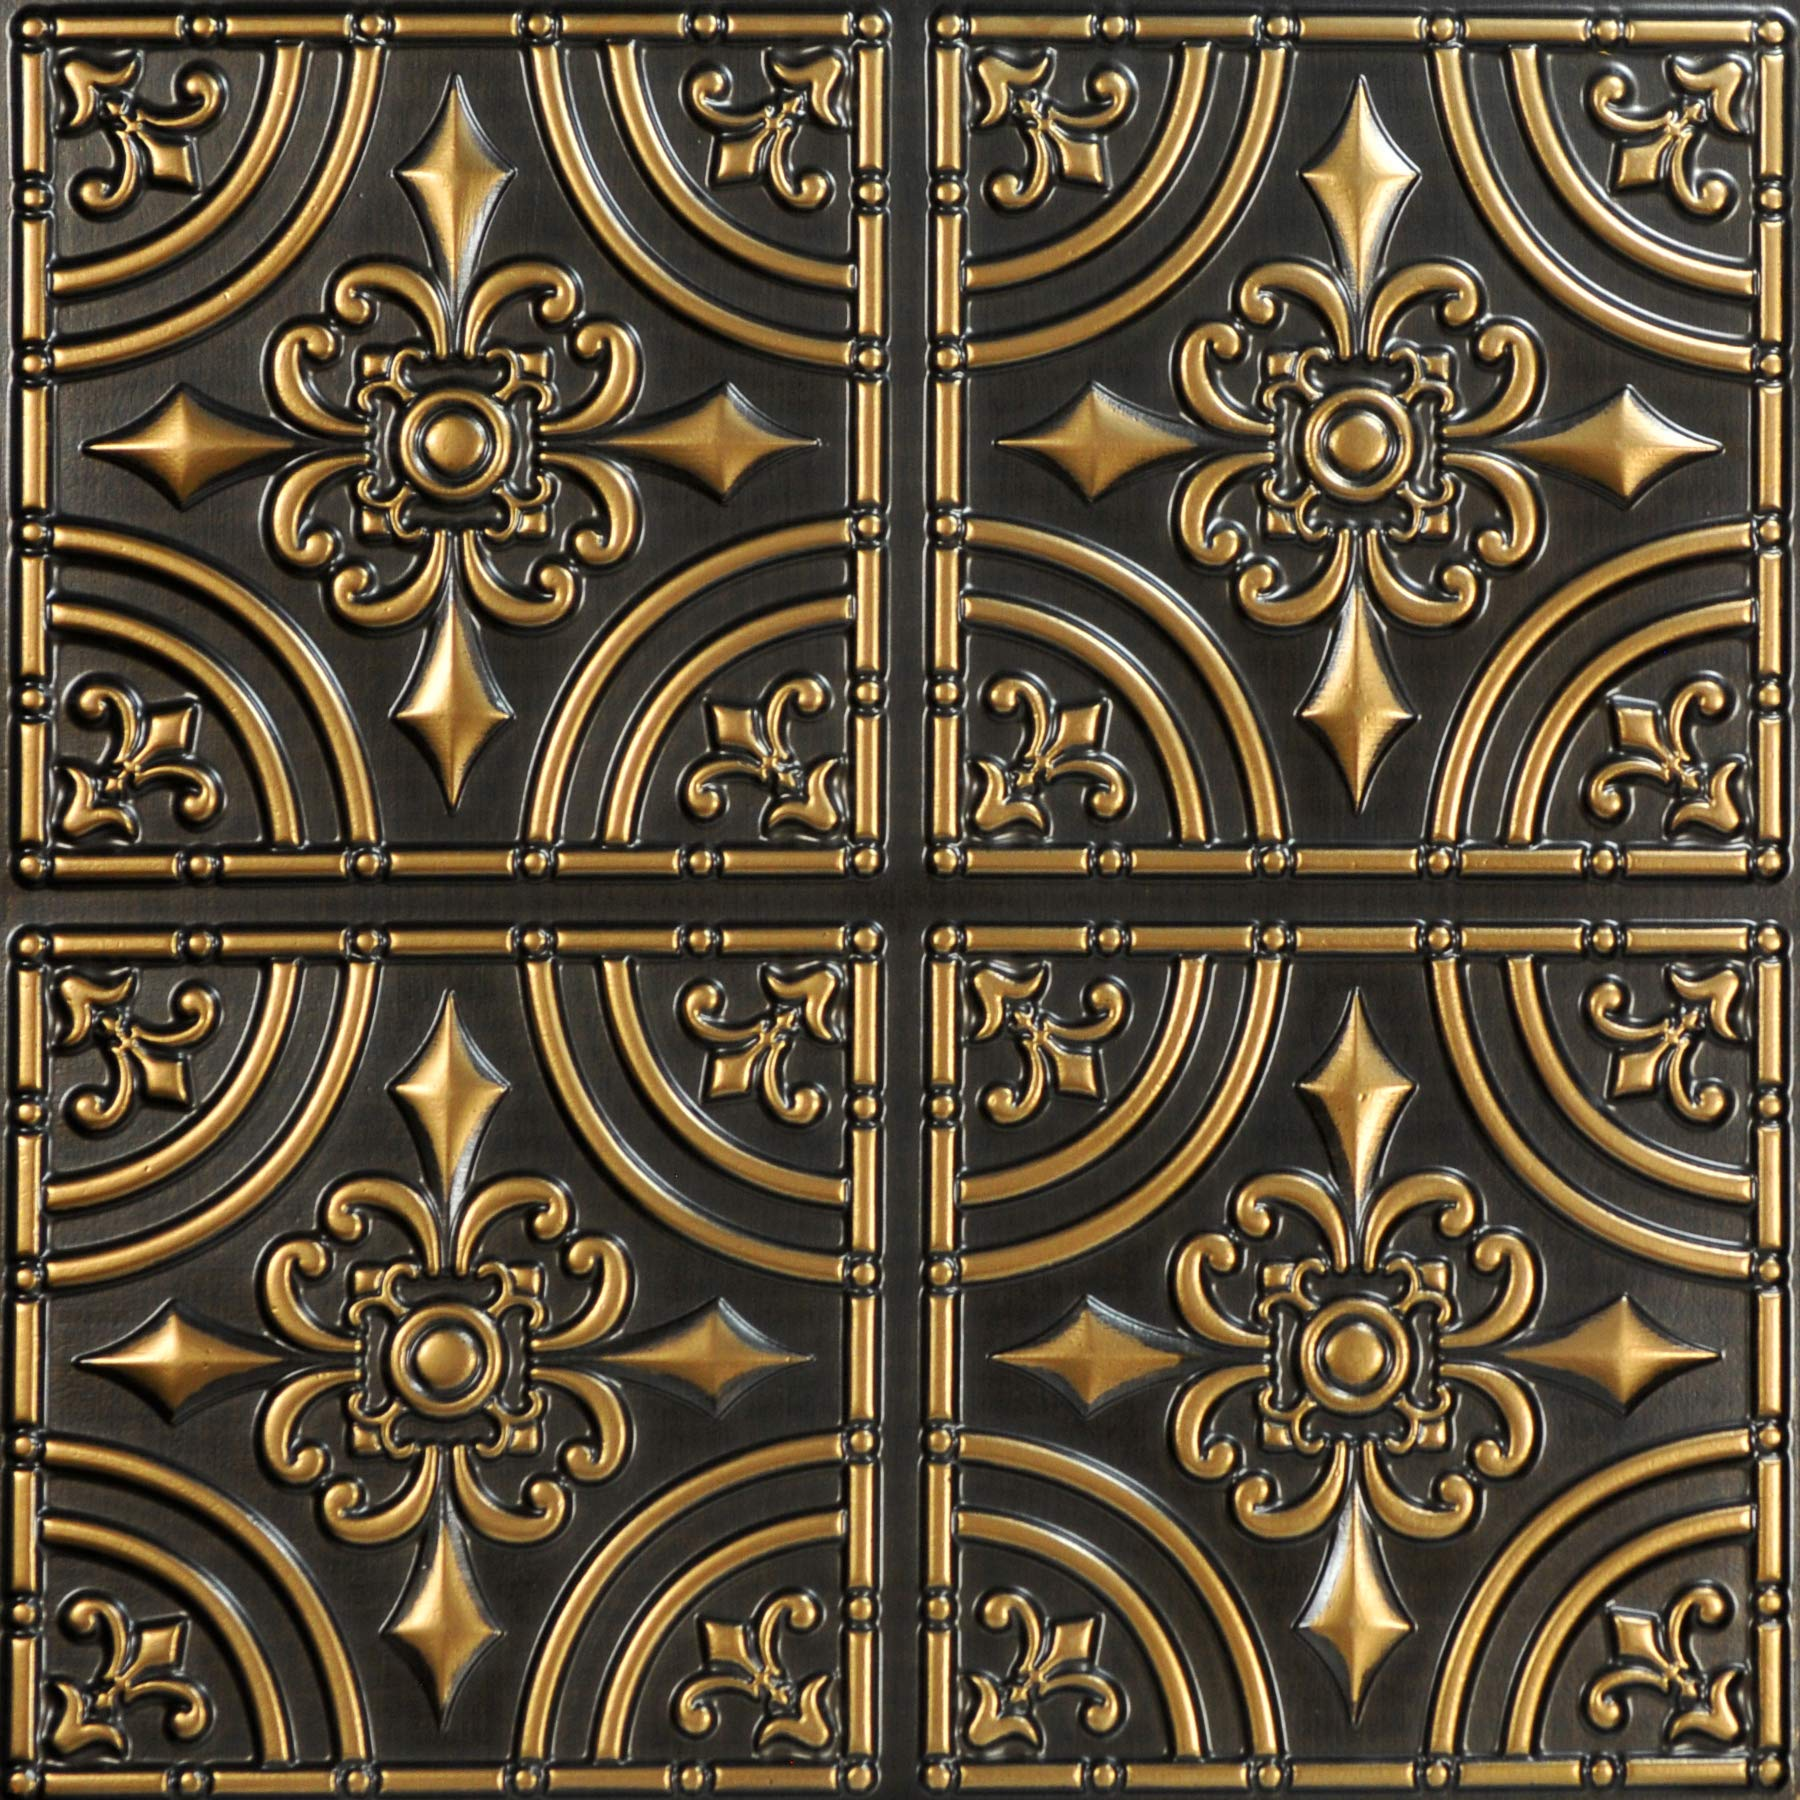 From Plain To Beautiful In Hours 205ag-24x24-25 Wrought Iron Ceiling Tile Antique Gold 25